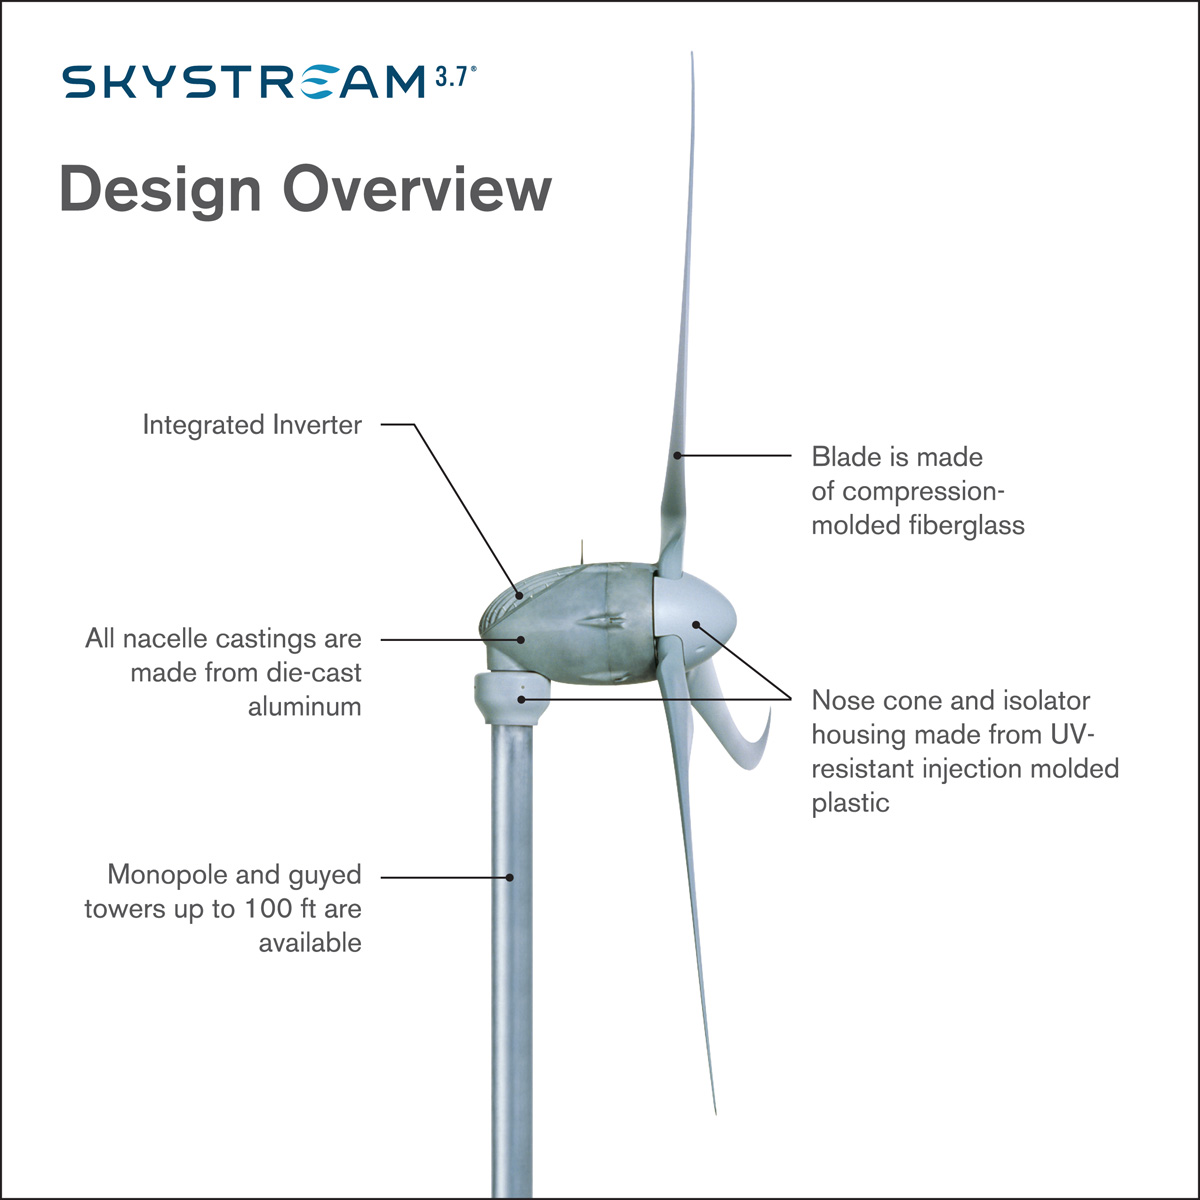 Wind Turbine Diagram How It Works Images & Pictures - Becuo